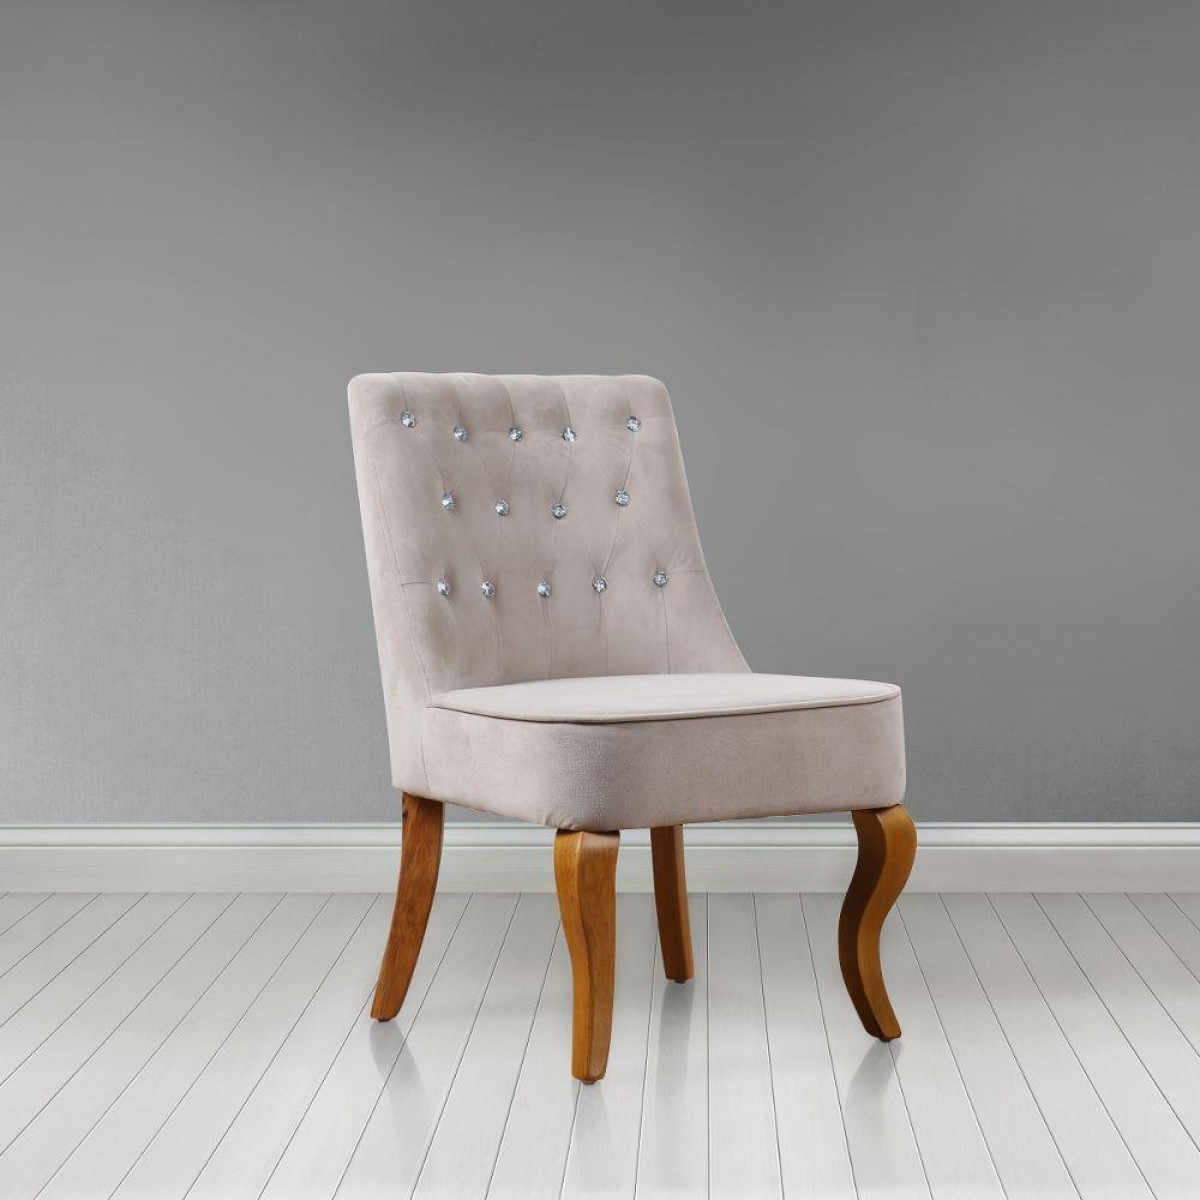 Darcey Beige Fabric Chair